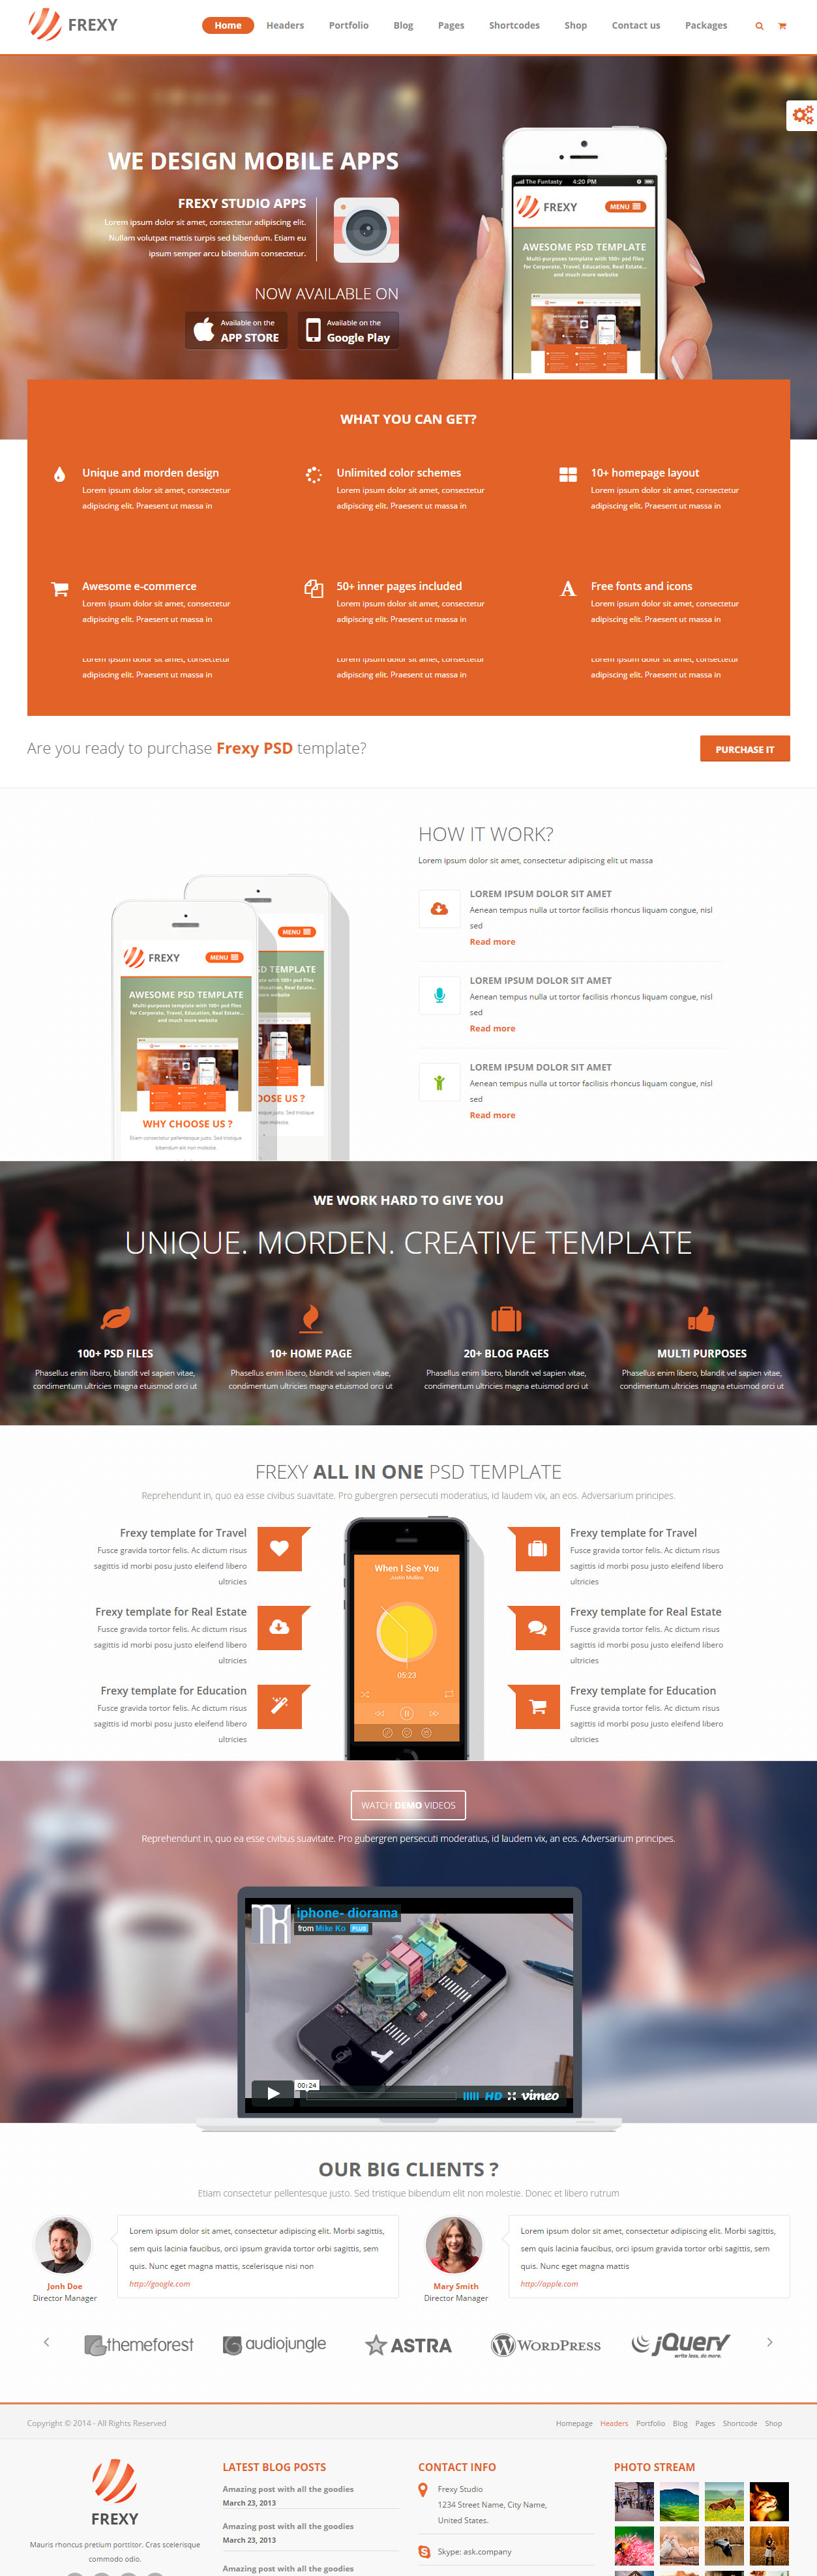 40 Best HTML5 Mobile App Templates in 2017 - Responsive Miracle